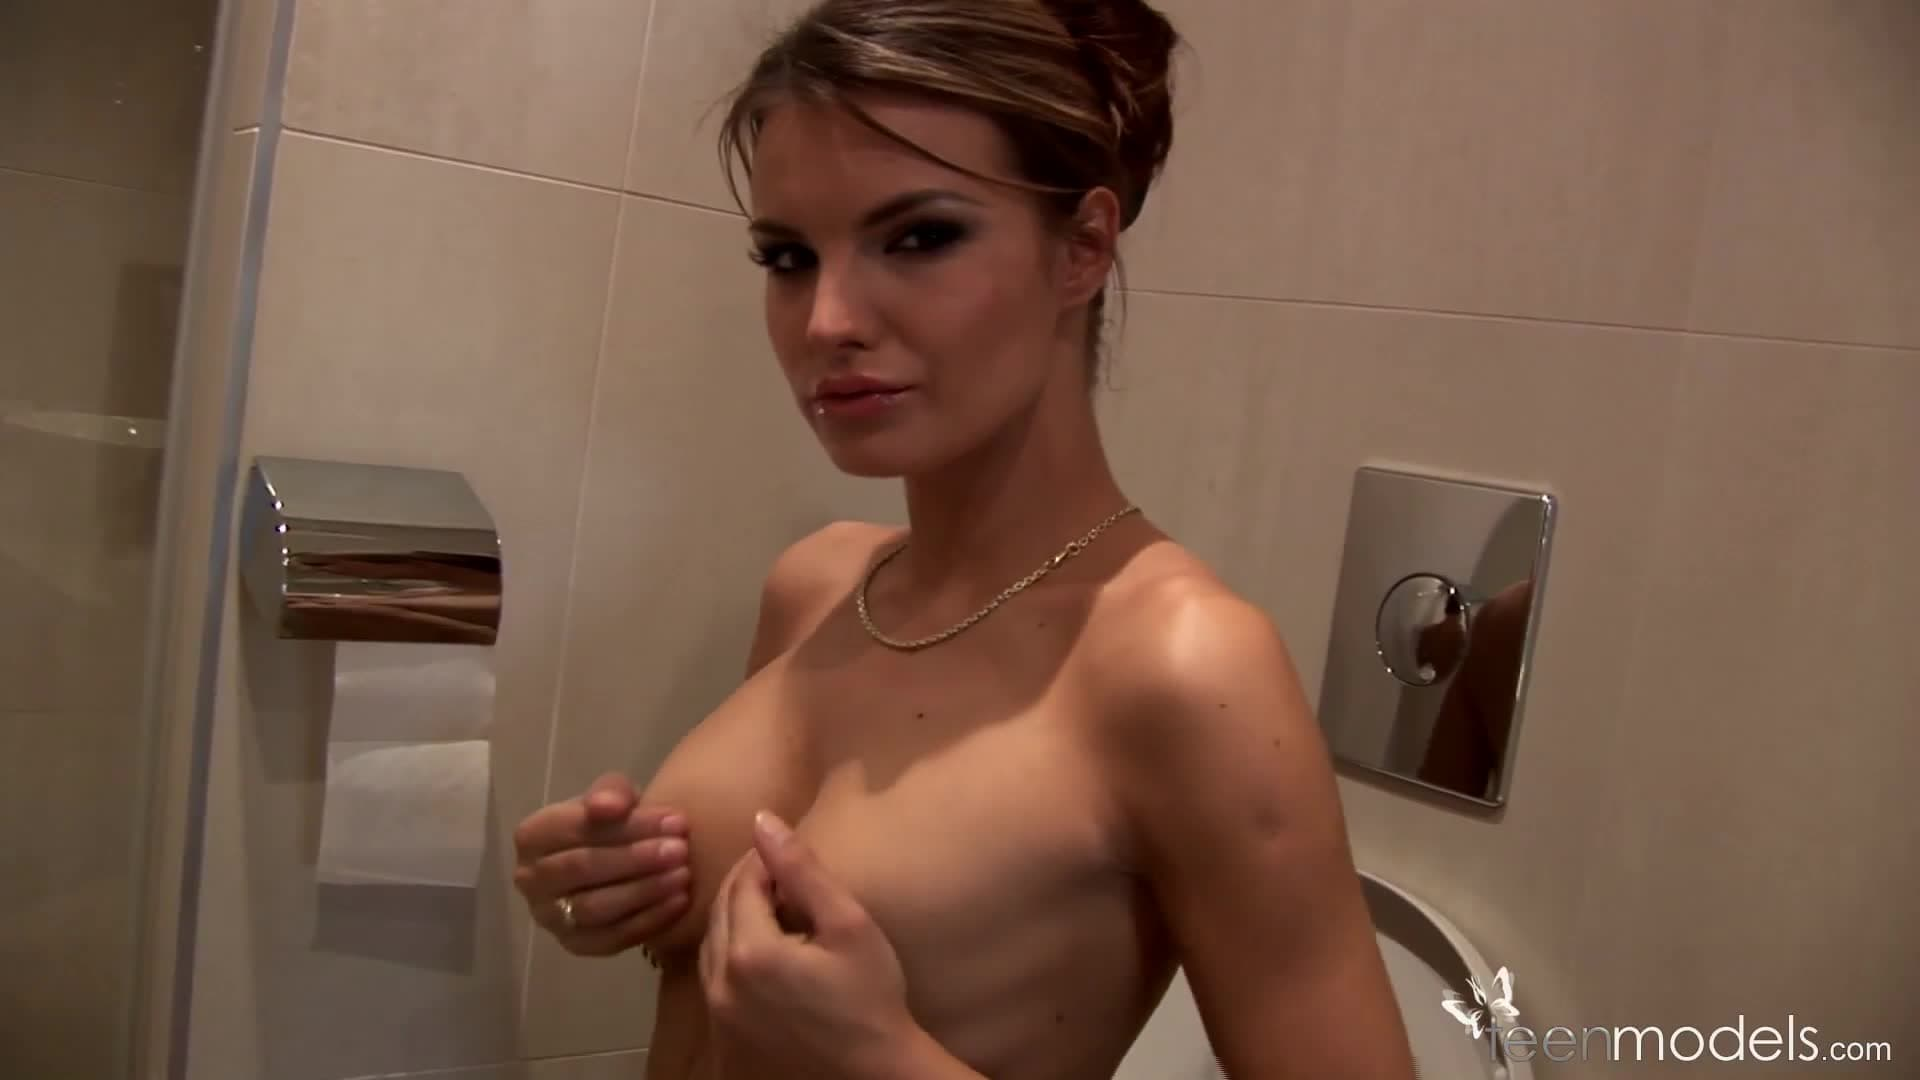 all charm! public restroom blowjob saggy tits touching words congratulate, you